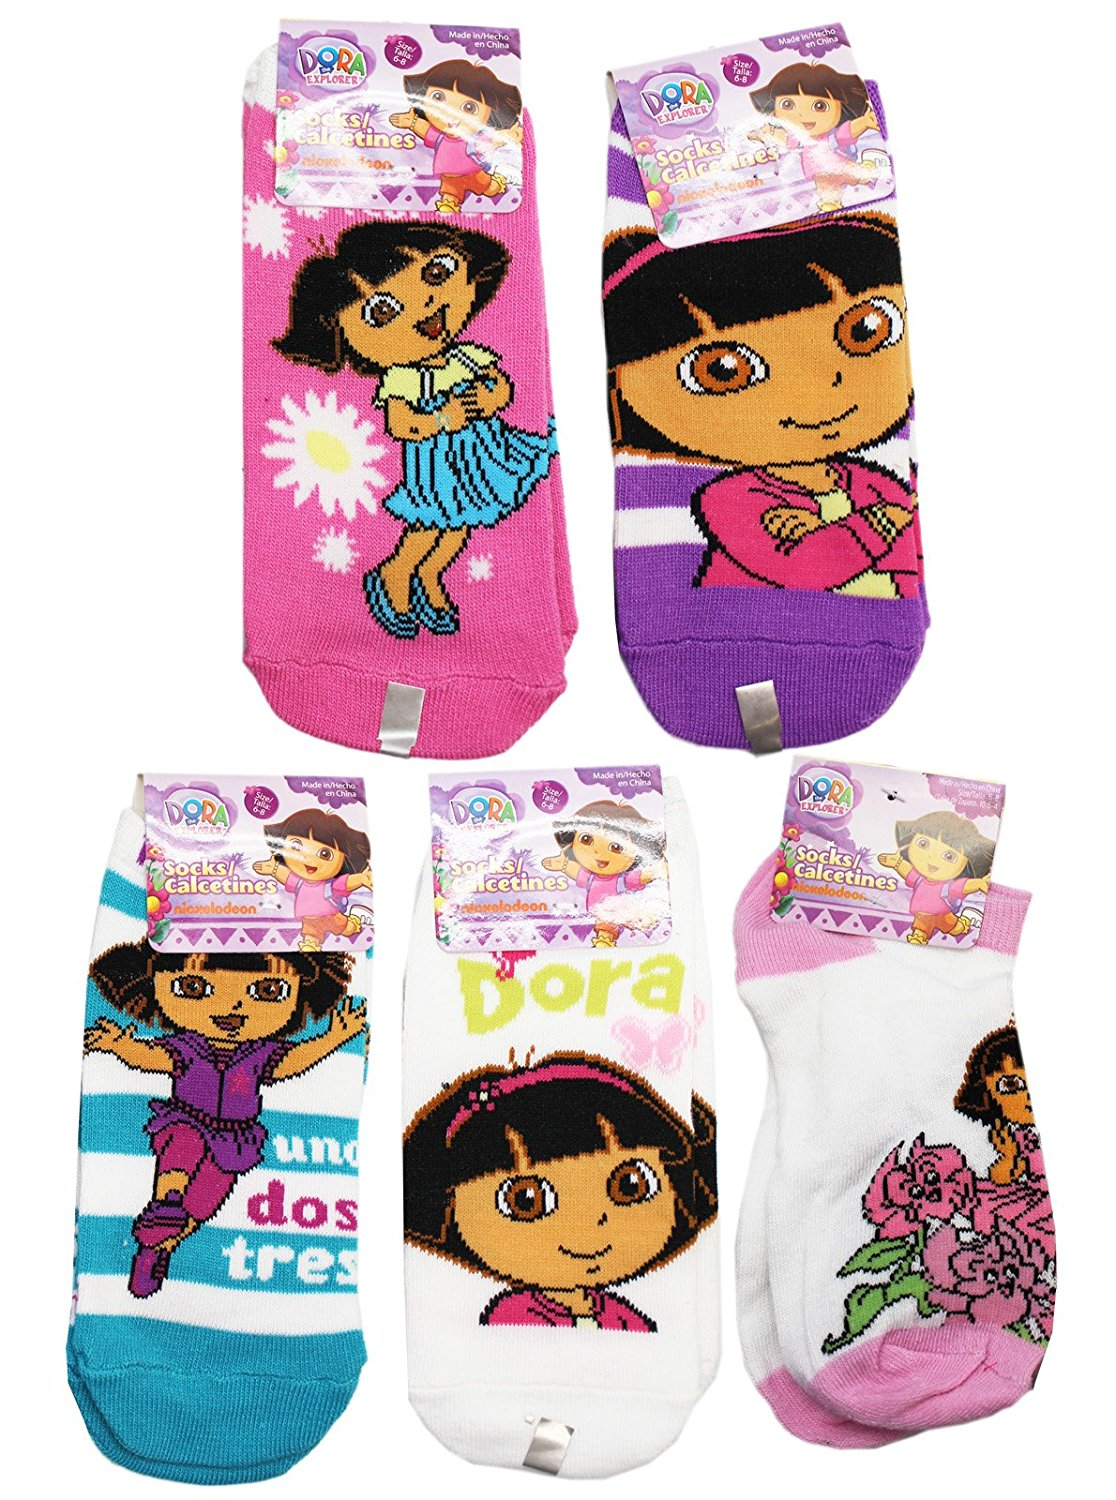 Dora Girls 2-Pack Knee High Socks Black//White Size 6-8